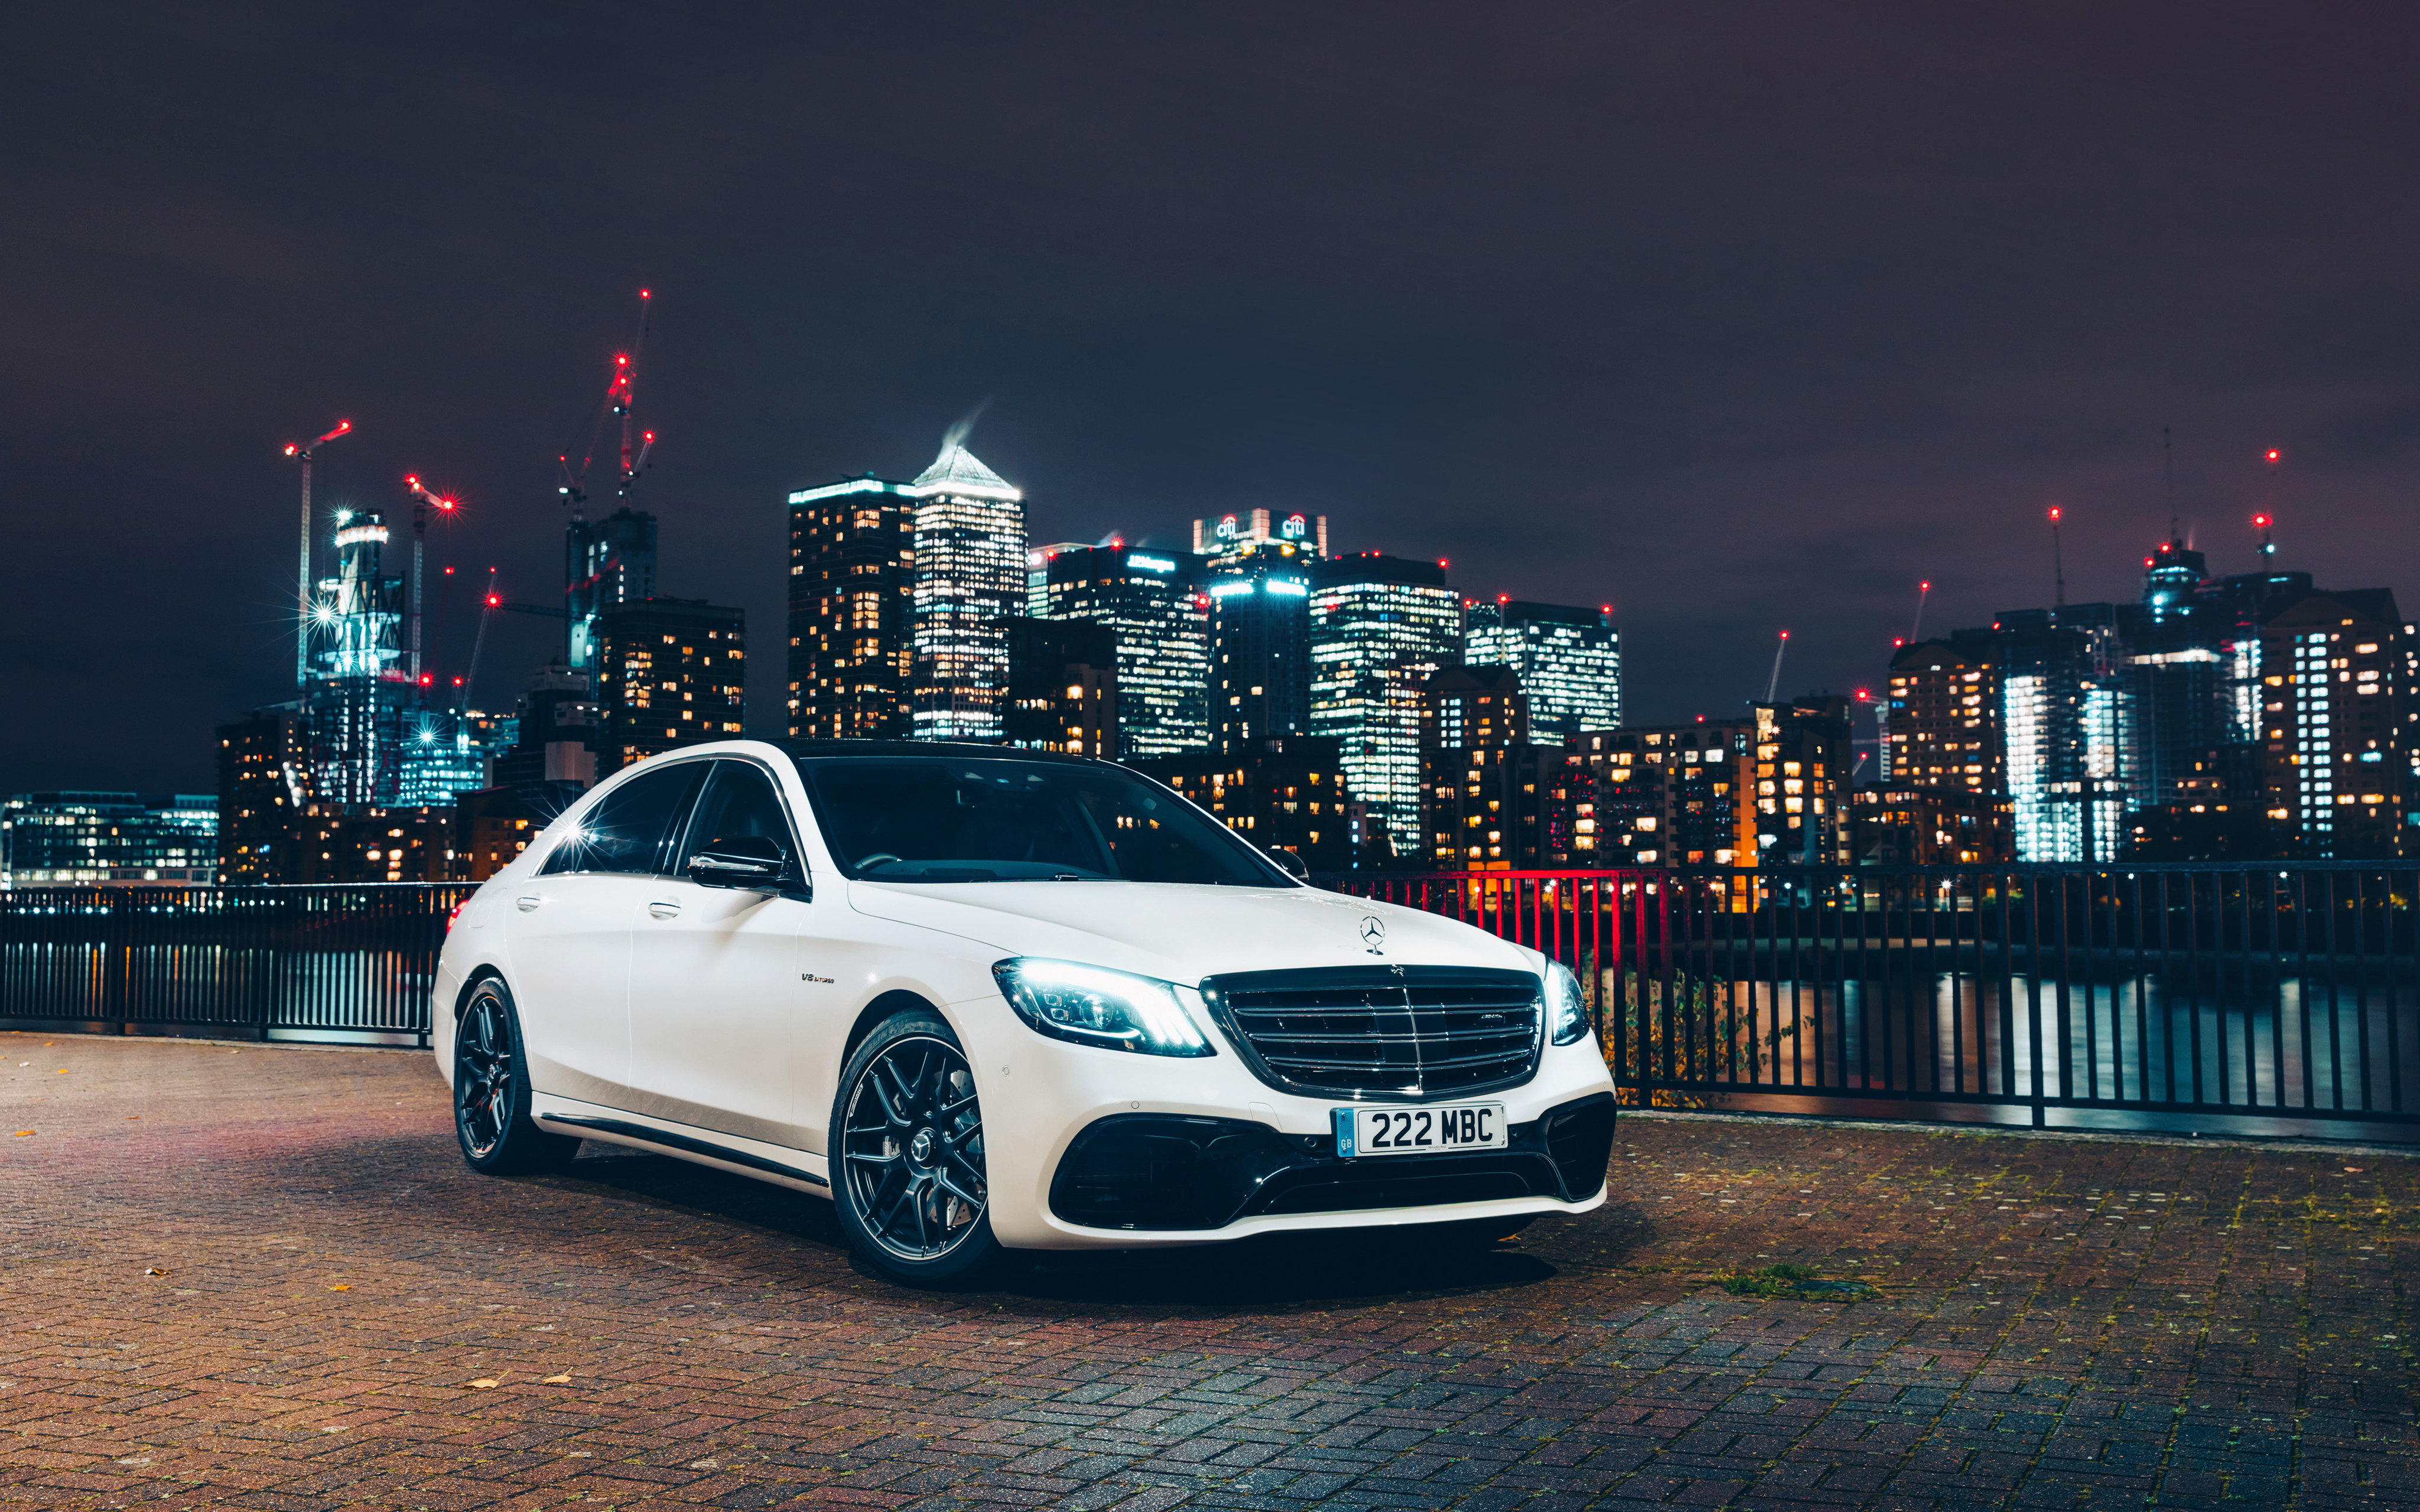 2017 Mercedes Amg S63 4matic 4k Wallpapers Hd Wallpapers Id 22392